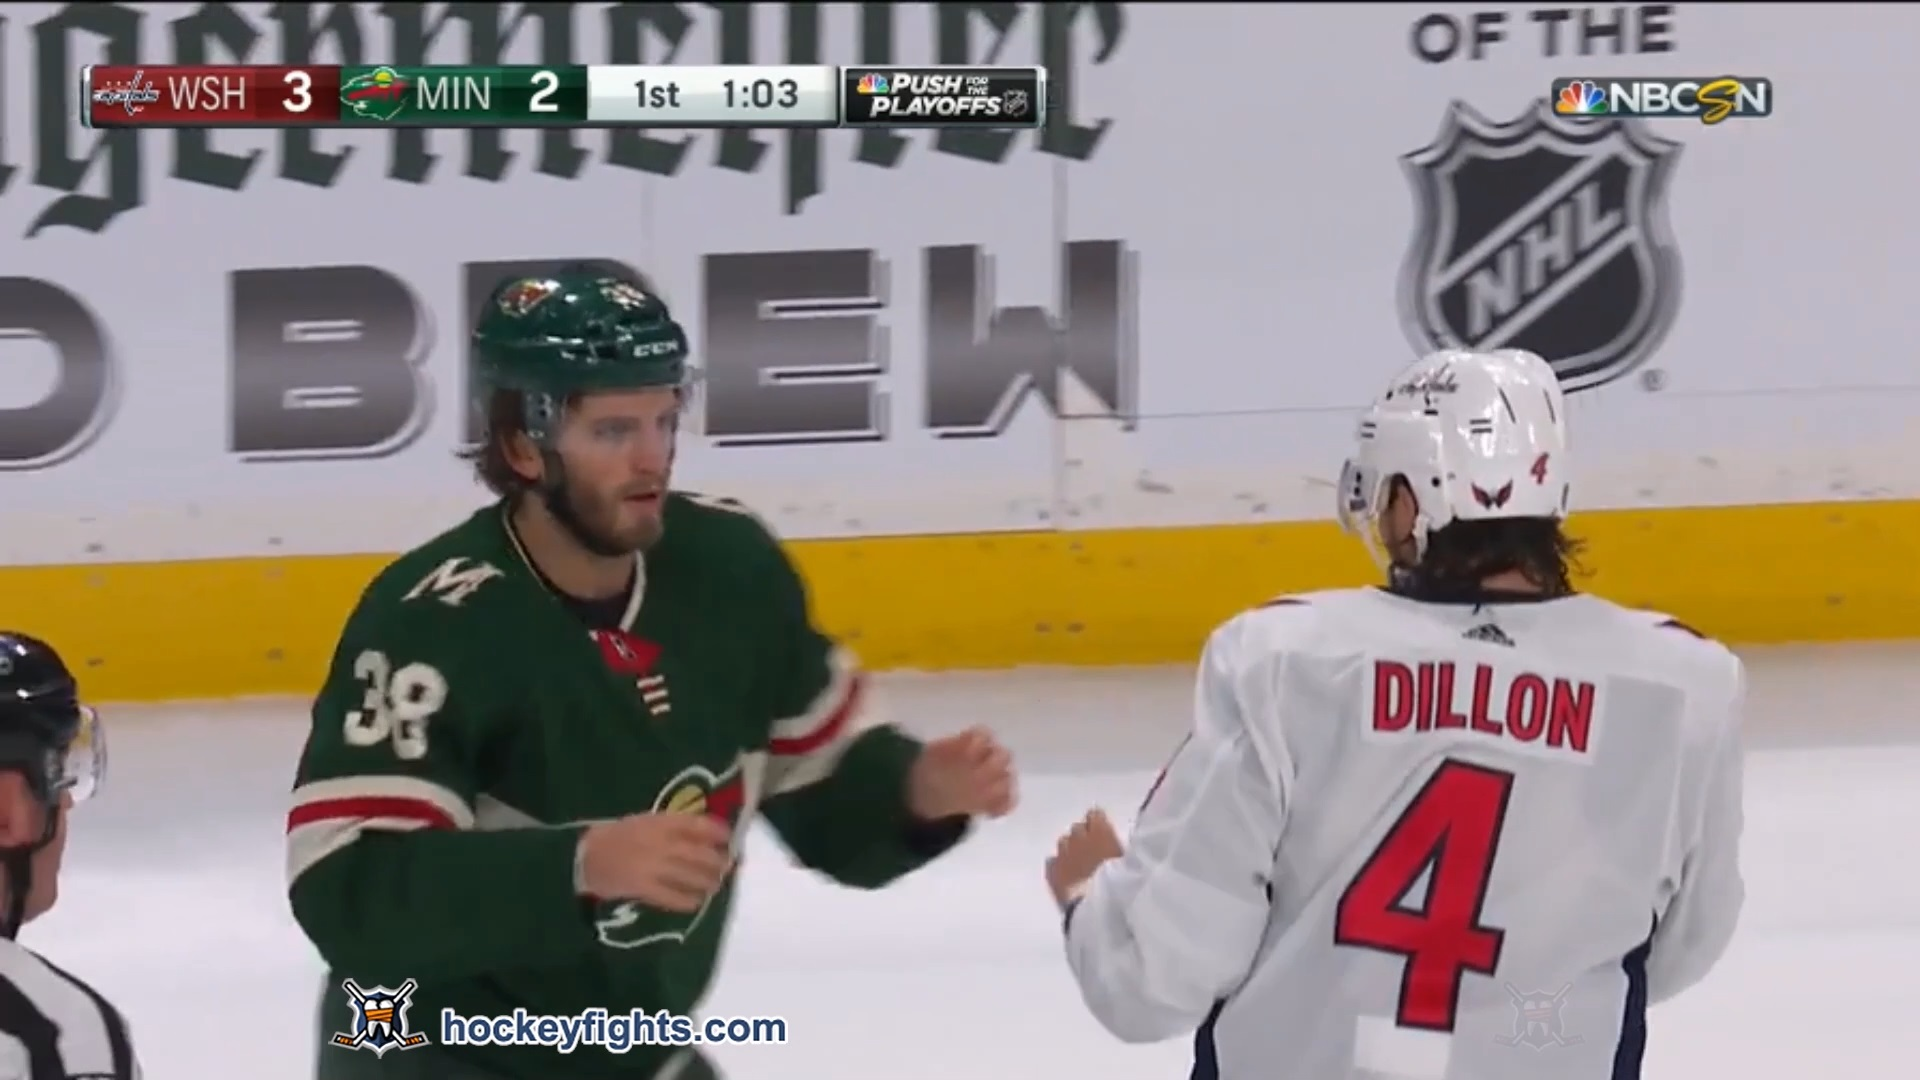 Ryan Hartman vs. Brenden Dillon